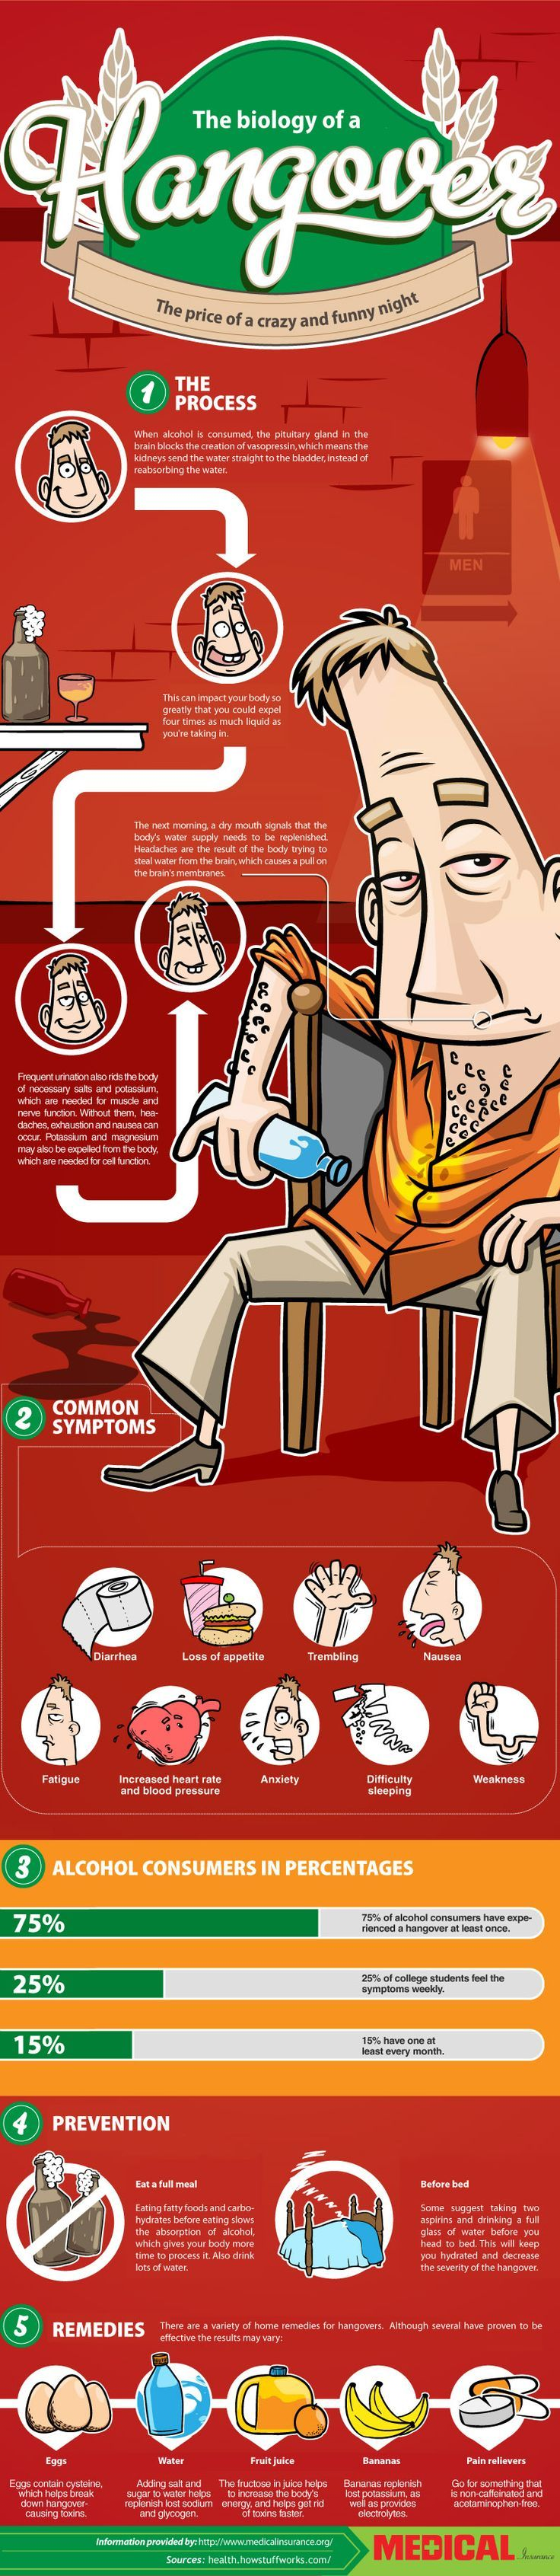 """What Is A Hangover? Most cultures have some kind of specific term for hangover. In medicine, it's called """"Veisalgia"""". Another term called """"Kveis"""" is Norwegian and literally means  """"uneasiness following debauchery"""". In Greek, the hangover is given the name """"Algia"""", which quite fittingly translates into """"pain""""."""